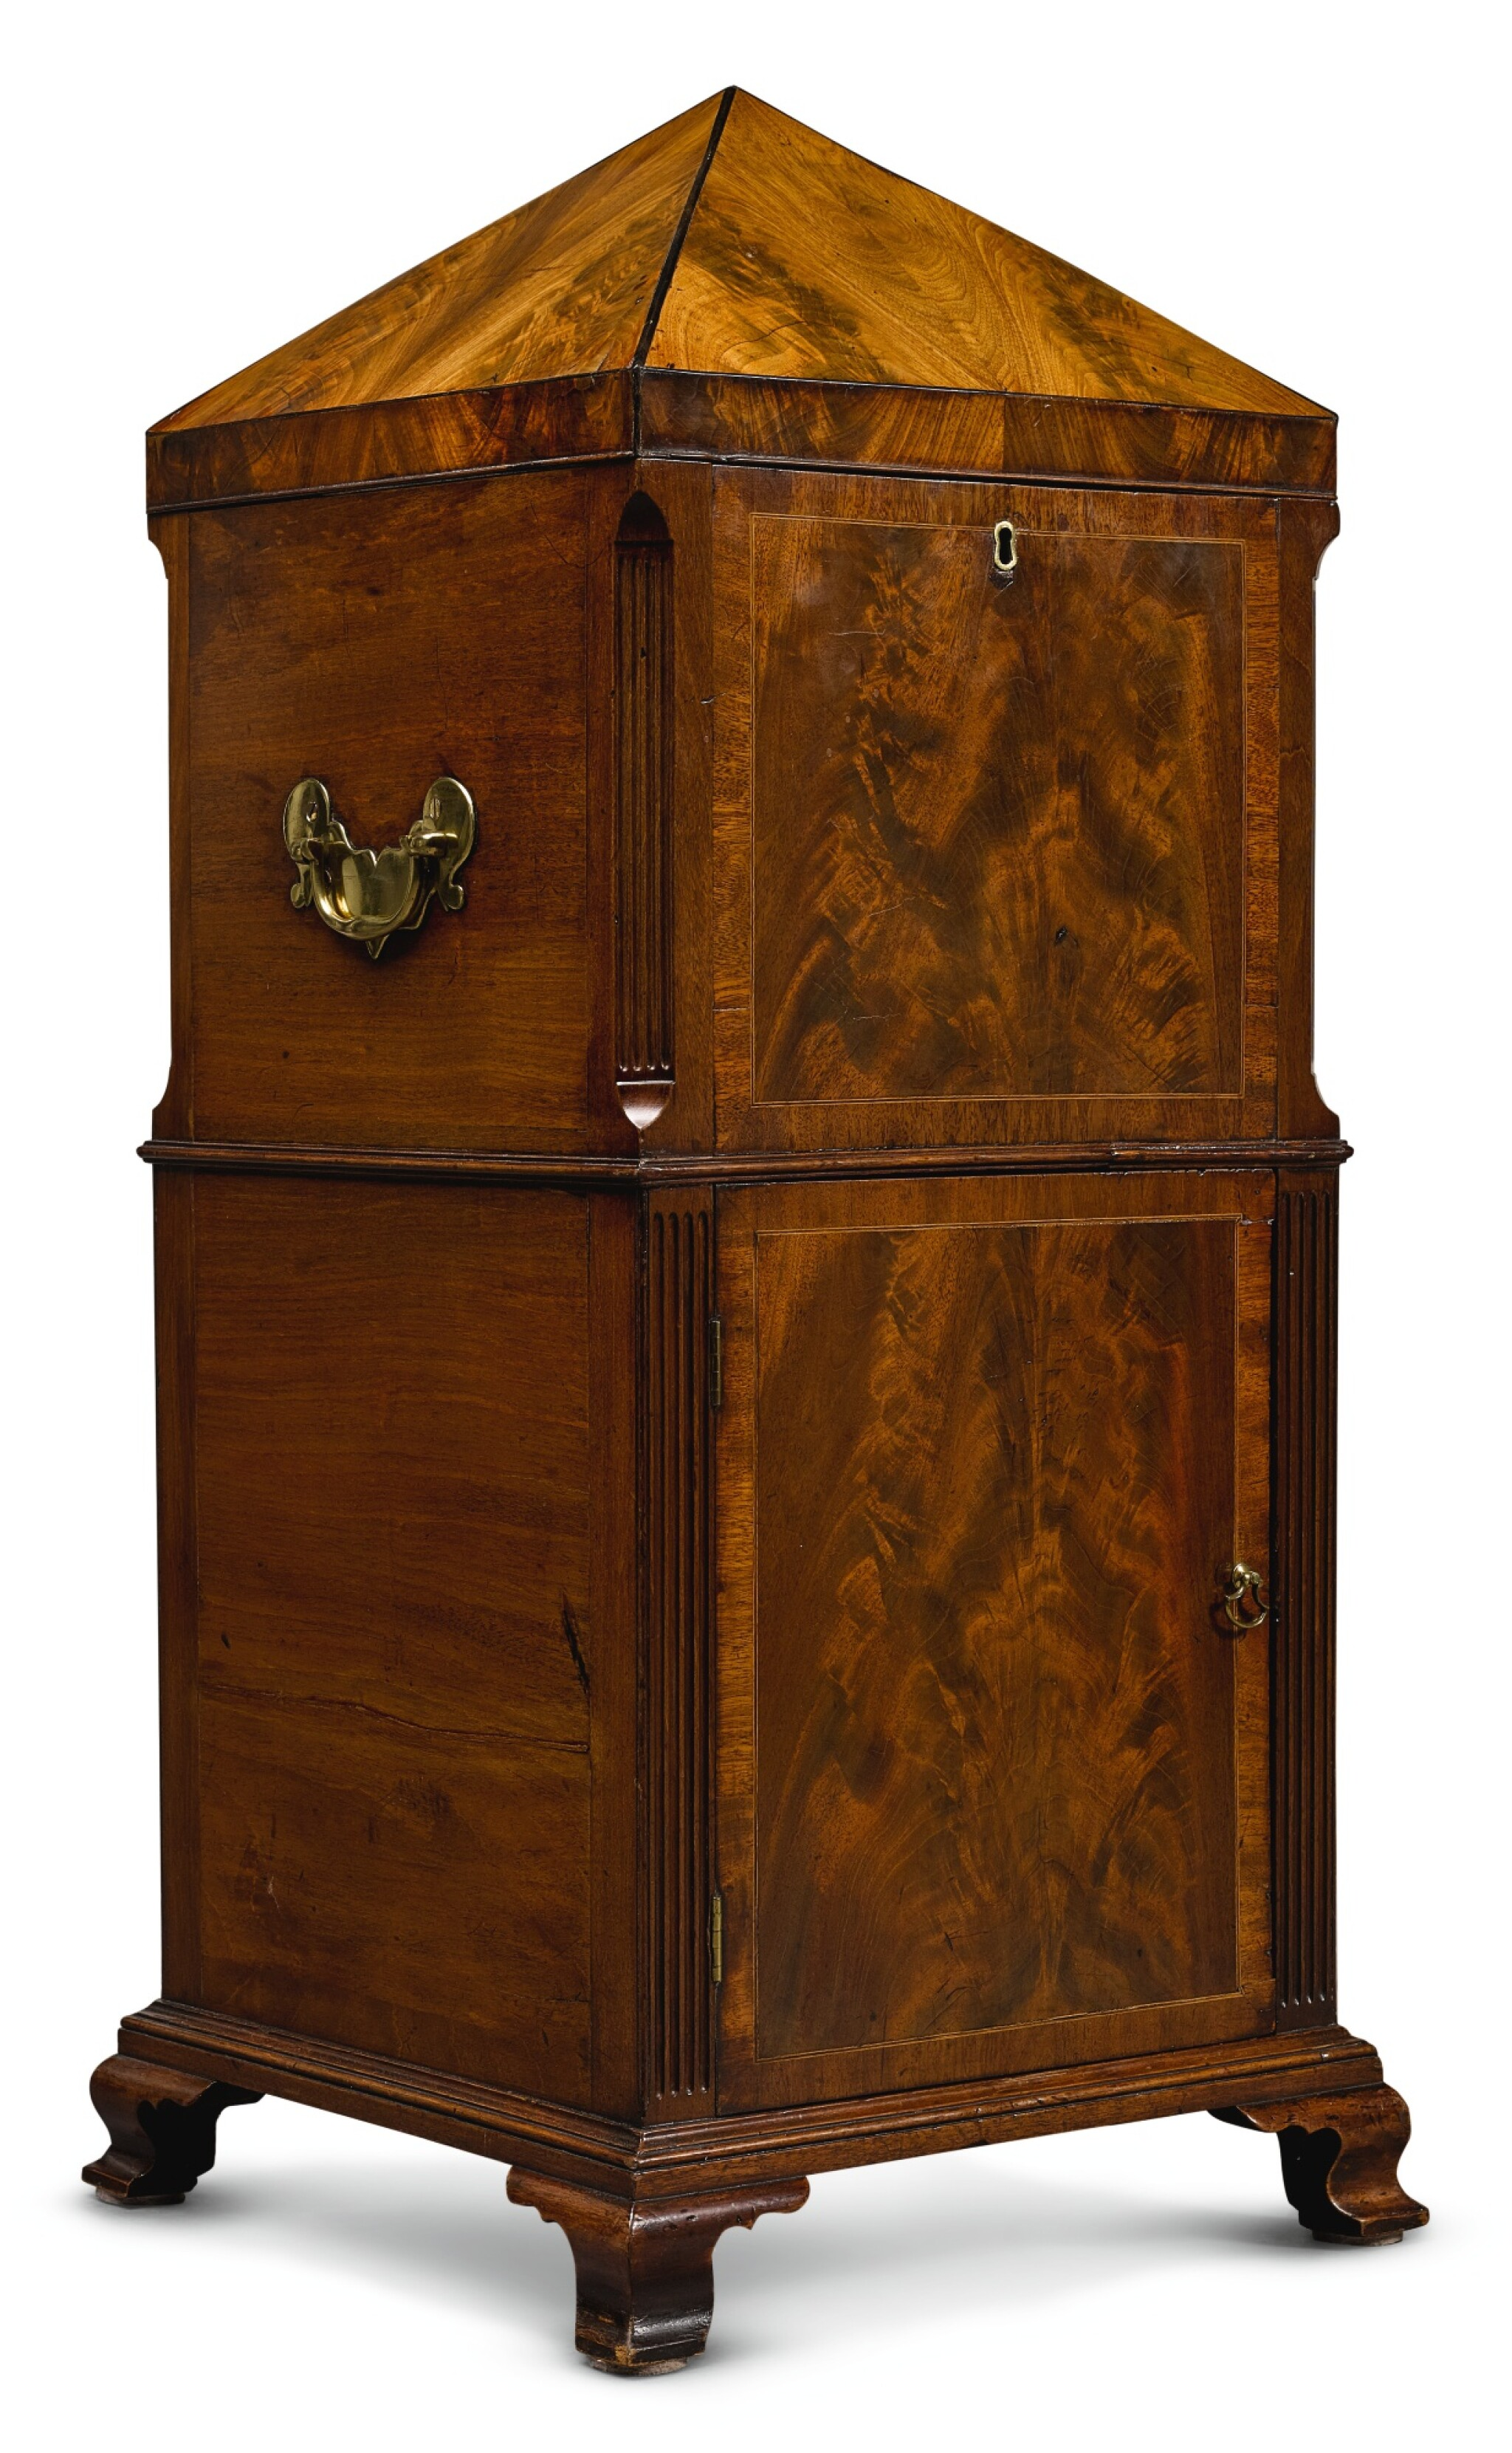 View 1 of Lot 18. A GEORGE III MAHOGANY CELLARETTE, LATE 18TH CENTURY.